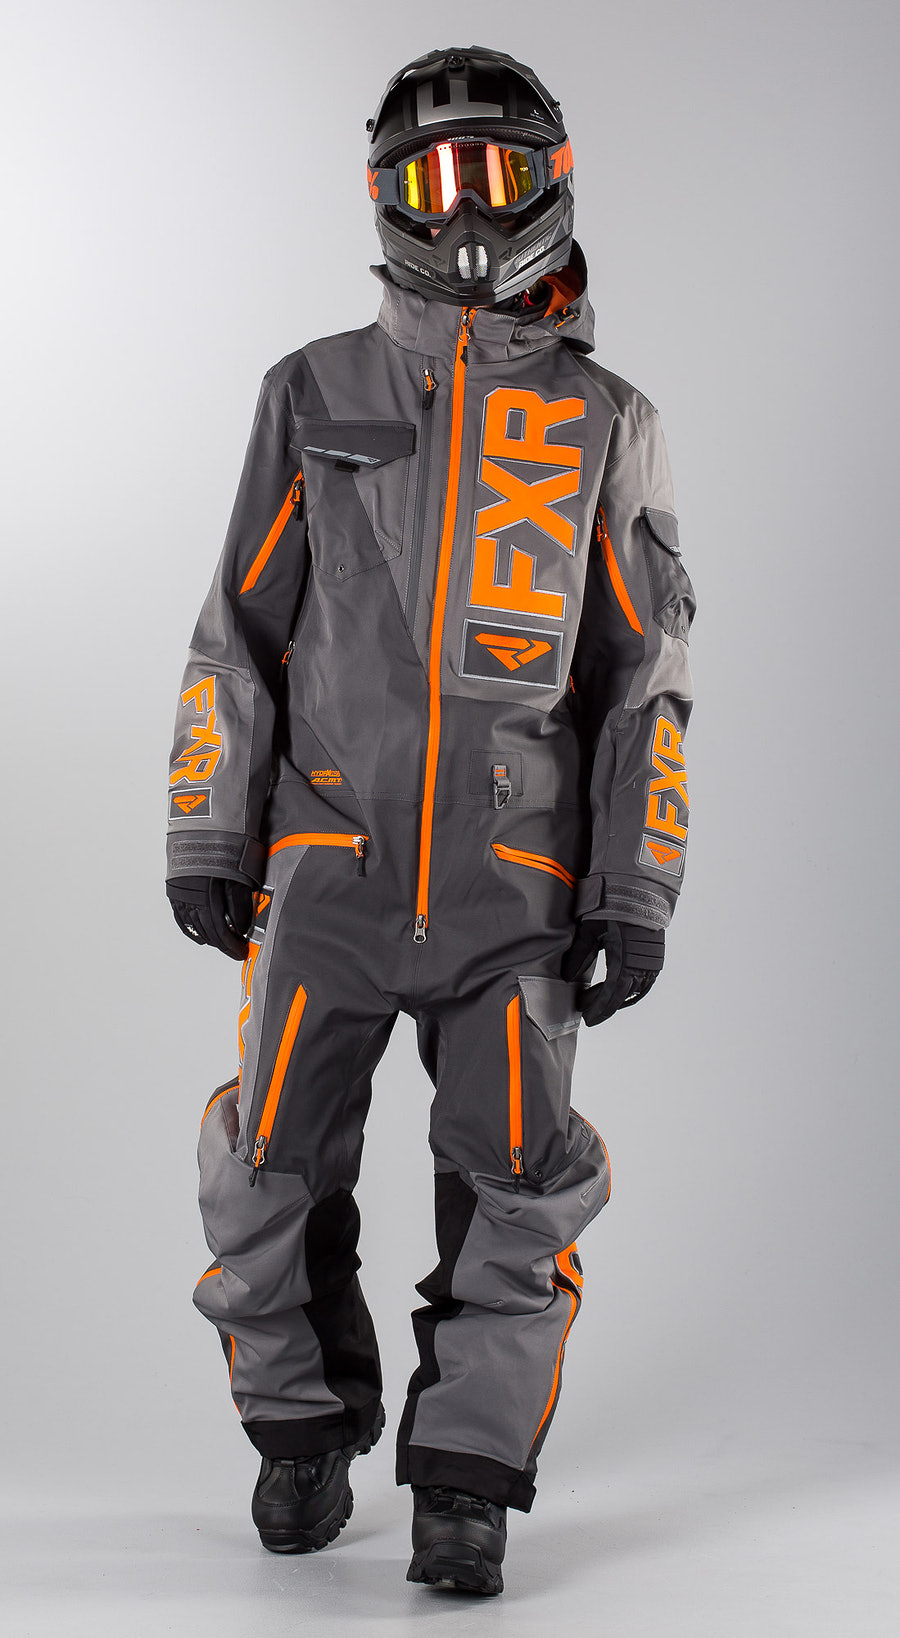 FXR Ranger Instinct Lite Charcoal/Grey/Orange Snowmobile Bekleidung Multi